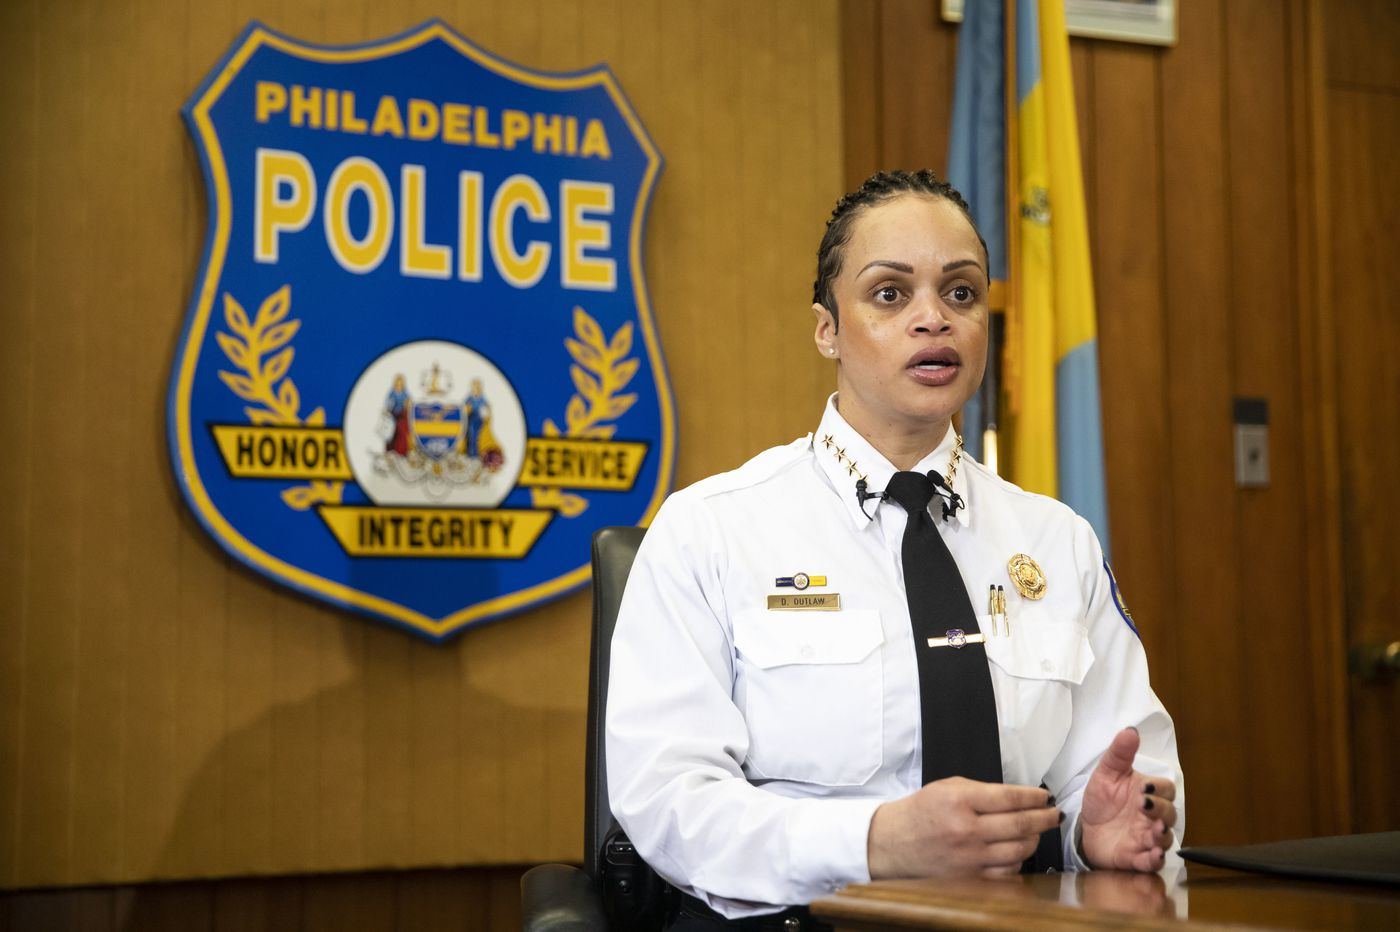 Philly Police Commissioner Danielle Outlaw says police will investigate death of man in department custody